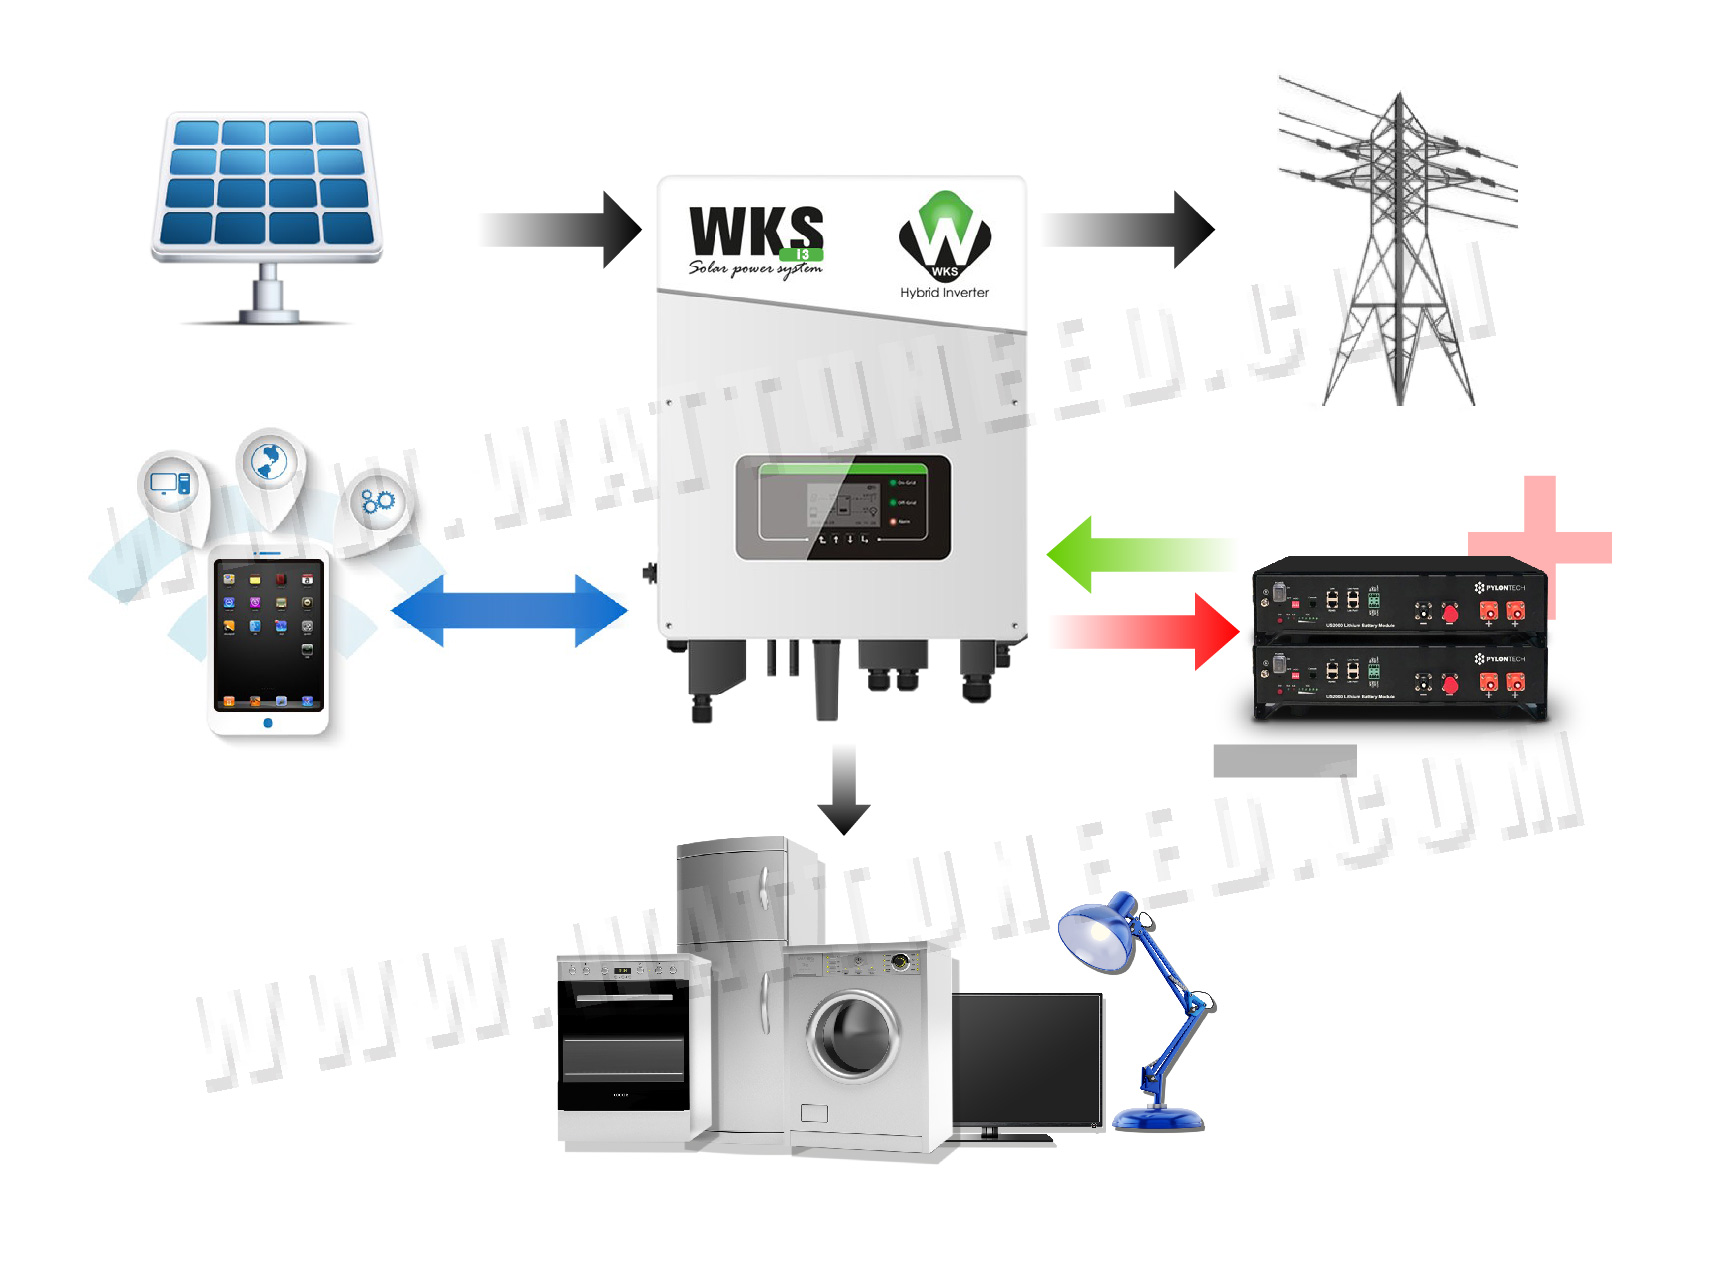 Store your solar production